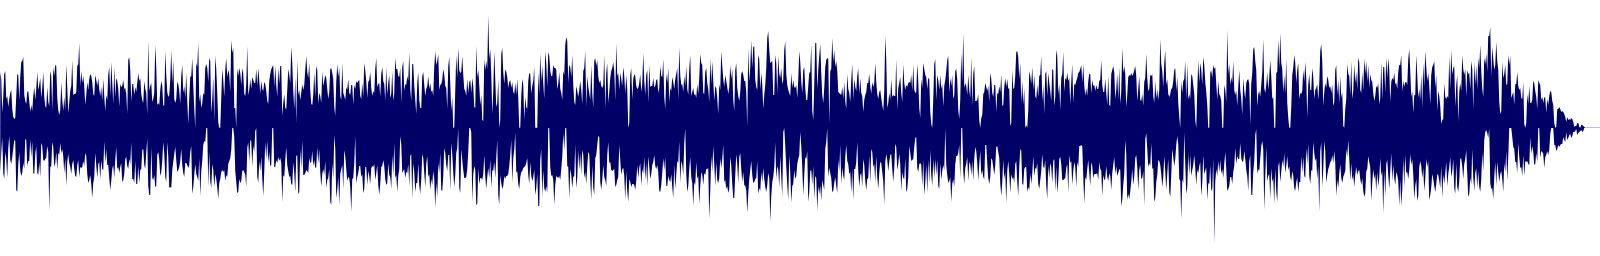 waveform of track #159643